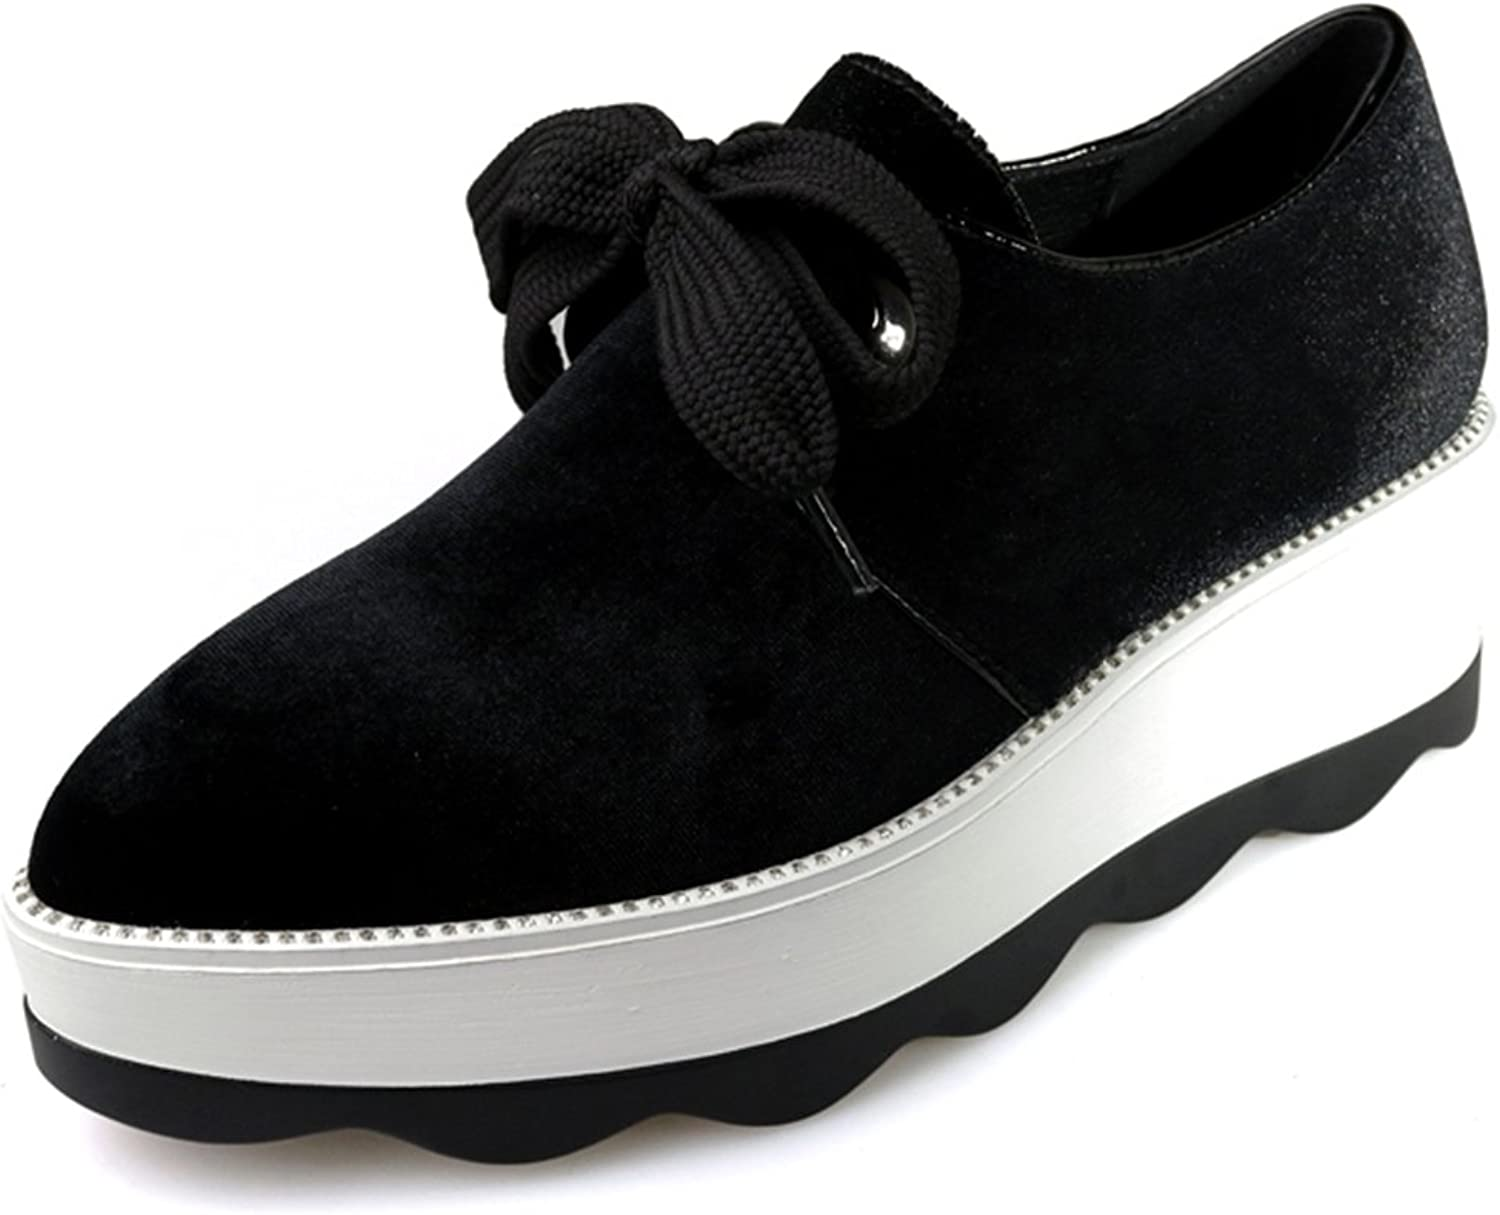 DecoStain Women's Fashion Comfortable Pointed Toe Platform Heels Trainers Lace Up Creepers Sports Jogging Walking Sneakers shoes